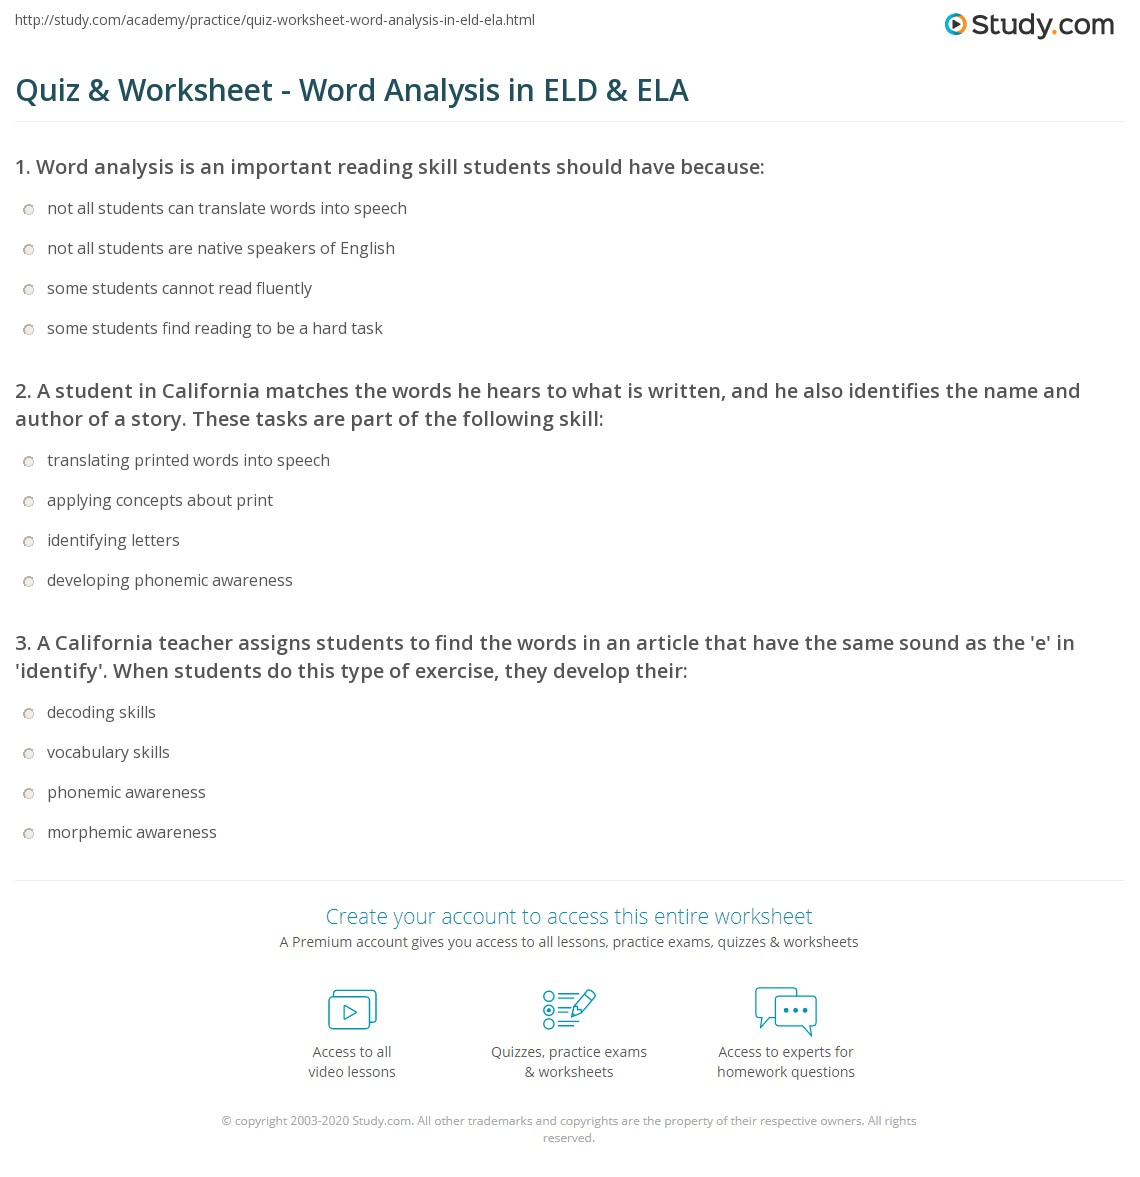 Quiz worksheet word analysis in eld ela study 1 a student in california matches the words he hears to what is written and he also identifies the name and author of a story these tasks are part of the ibookread PDF